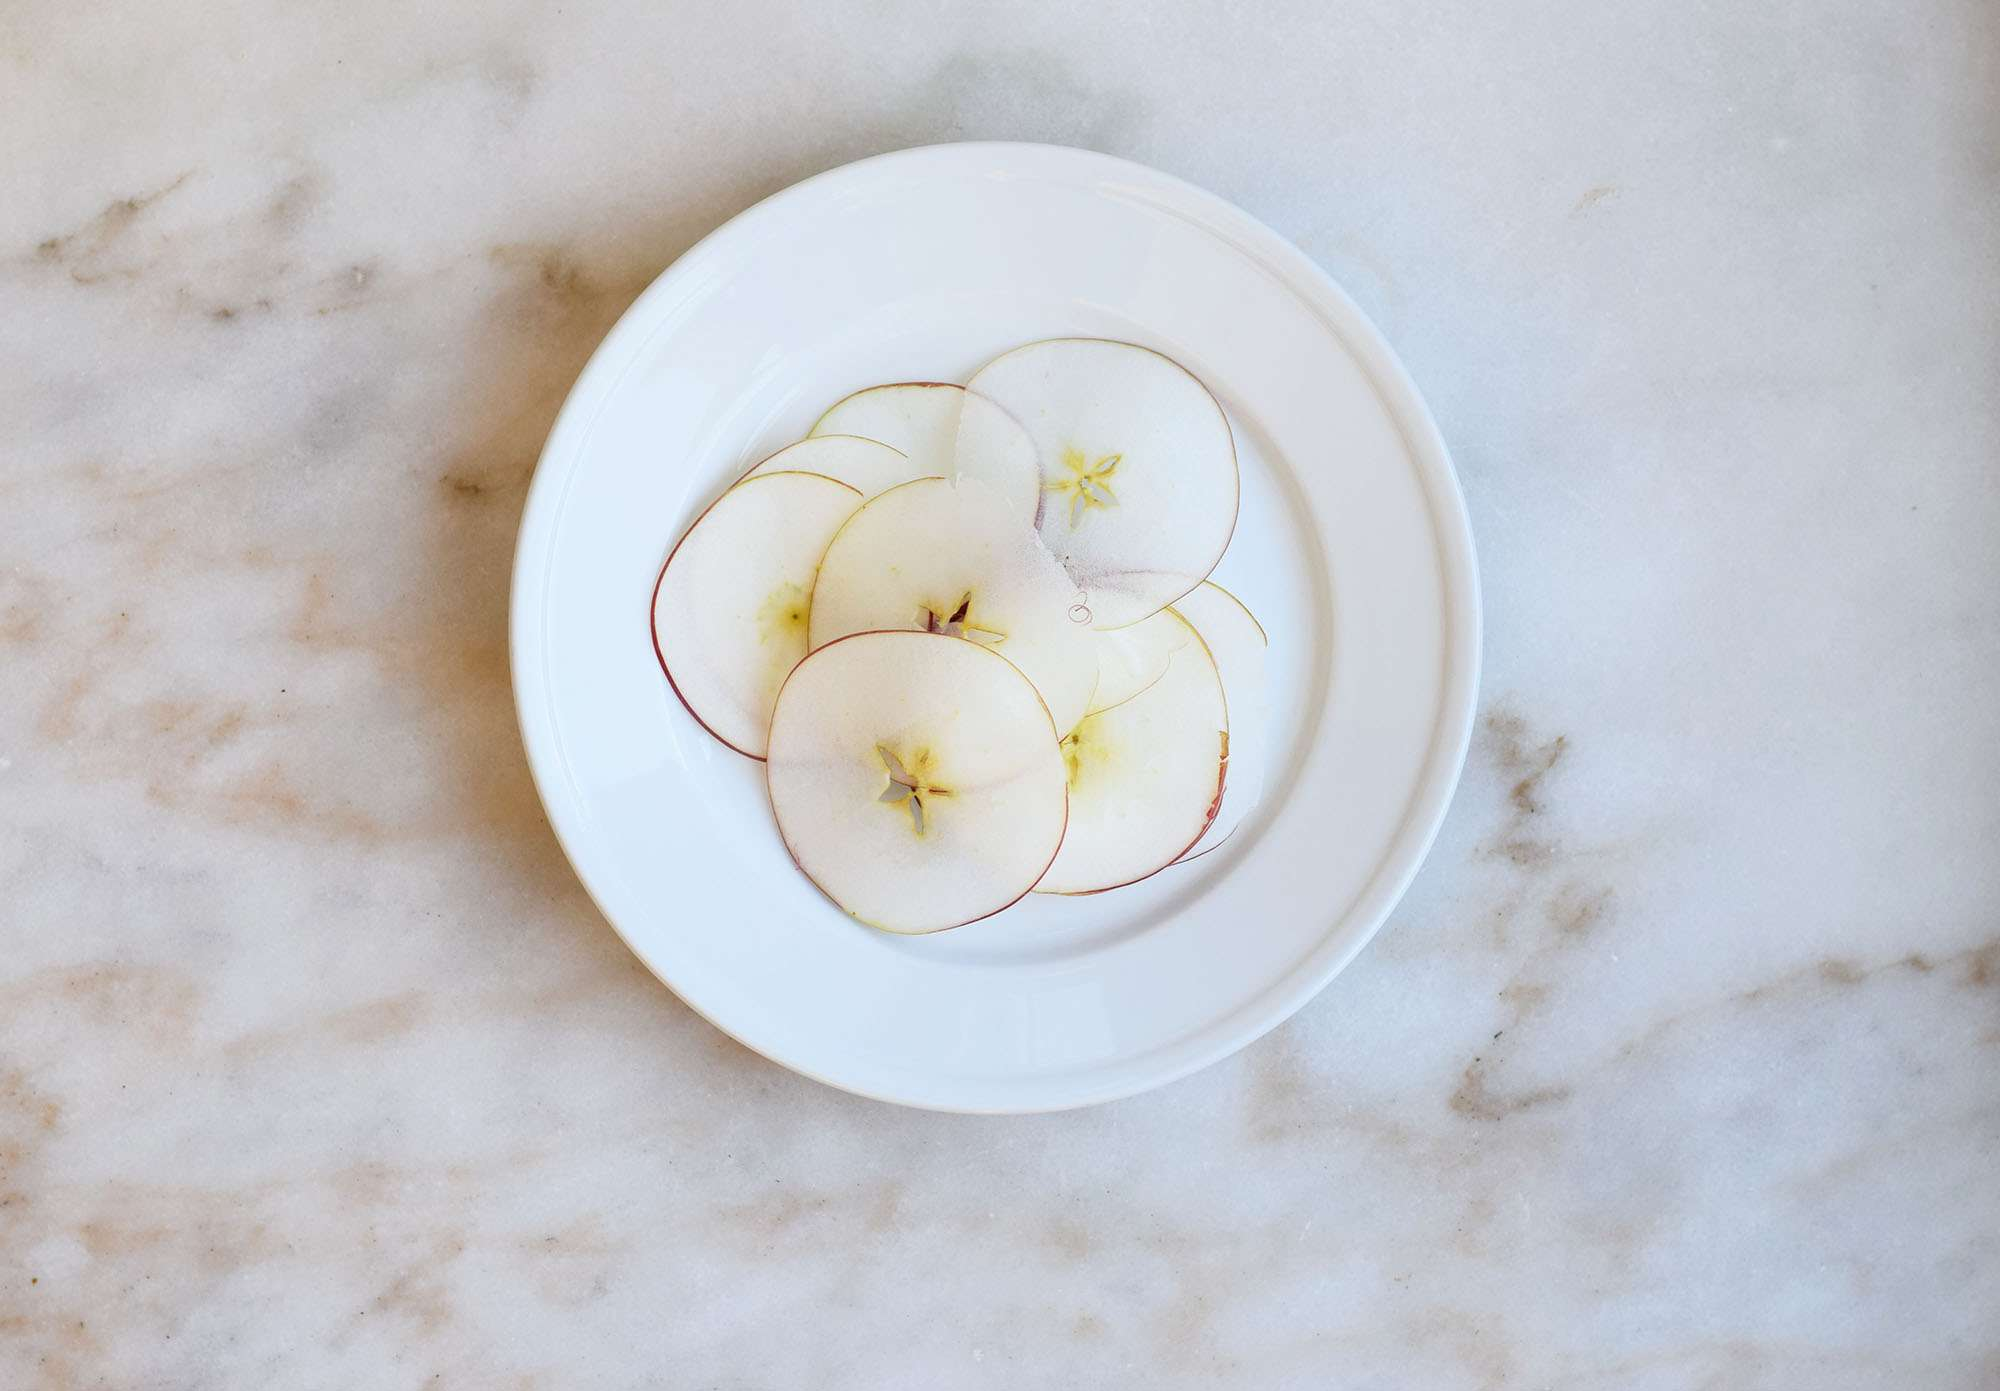 slice the apple thinly